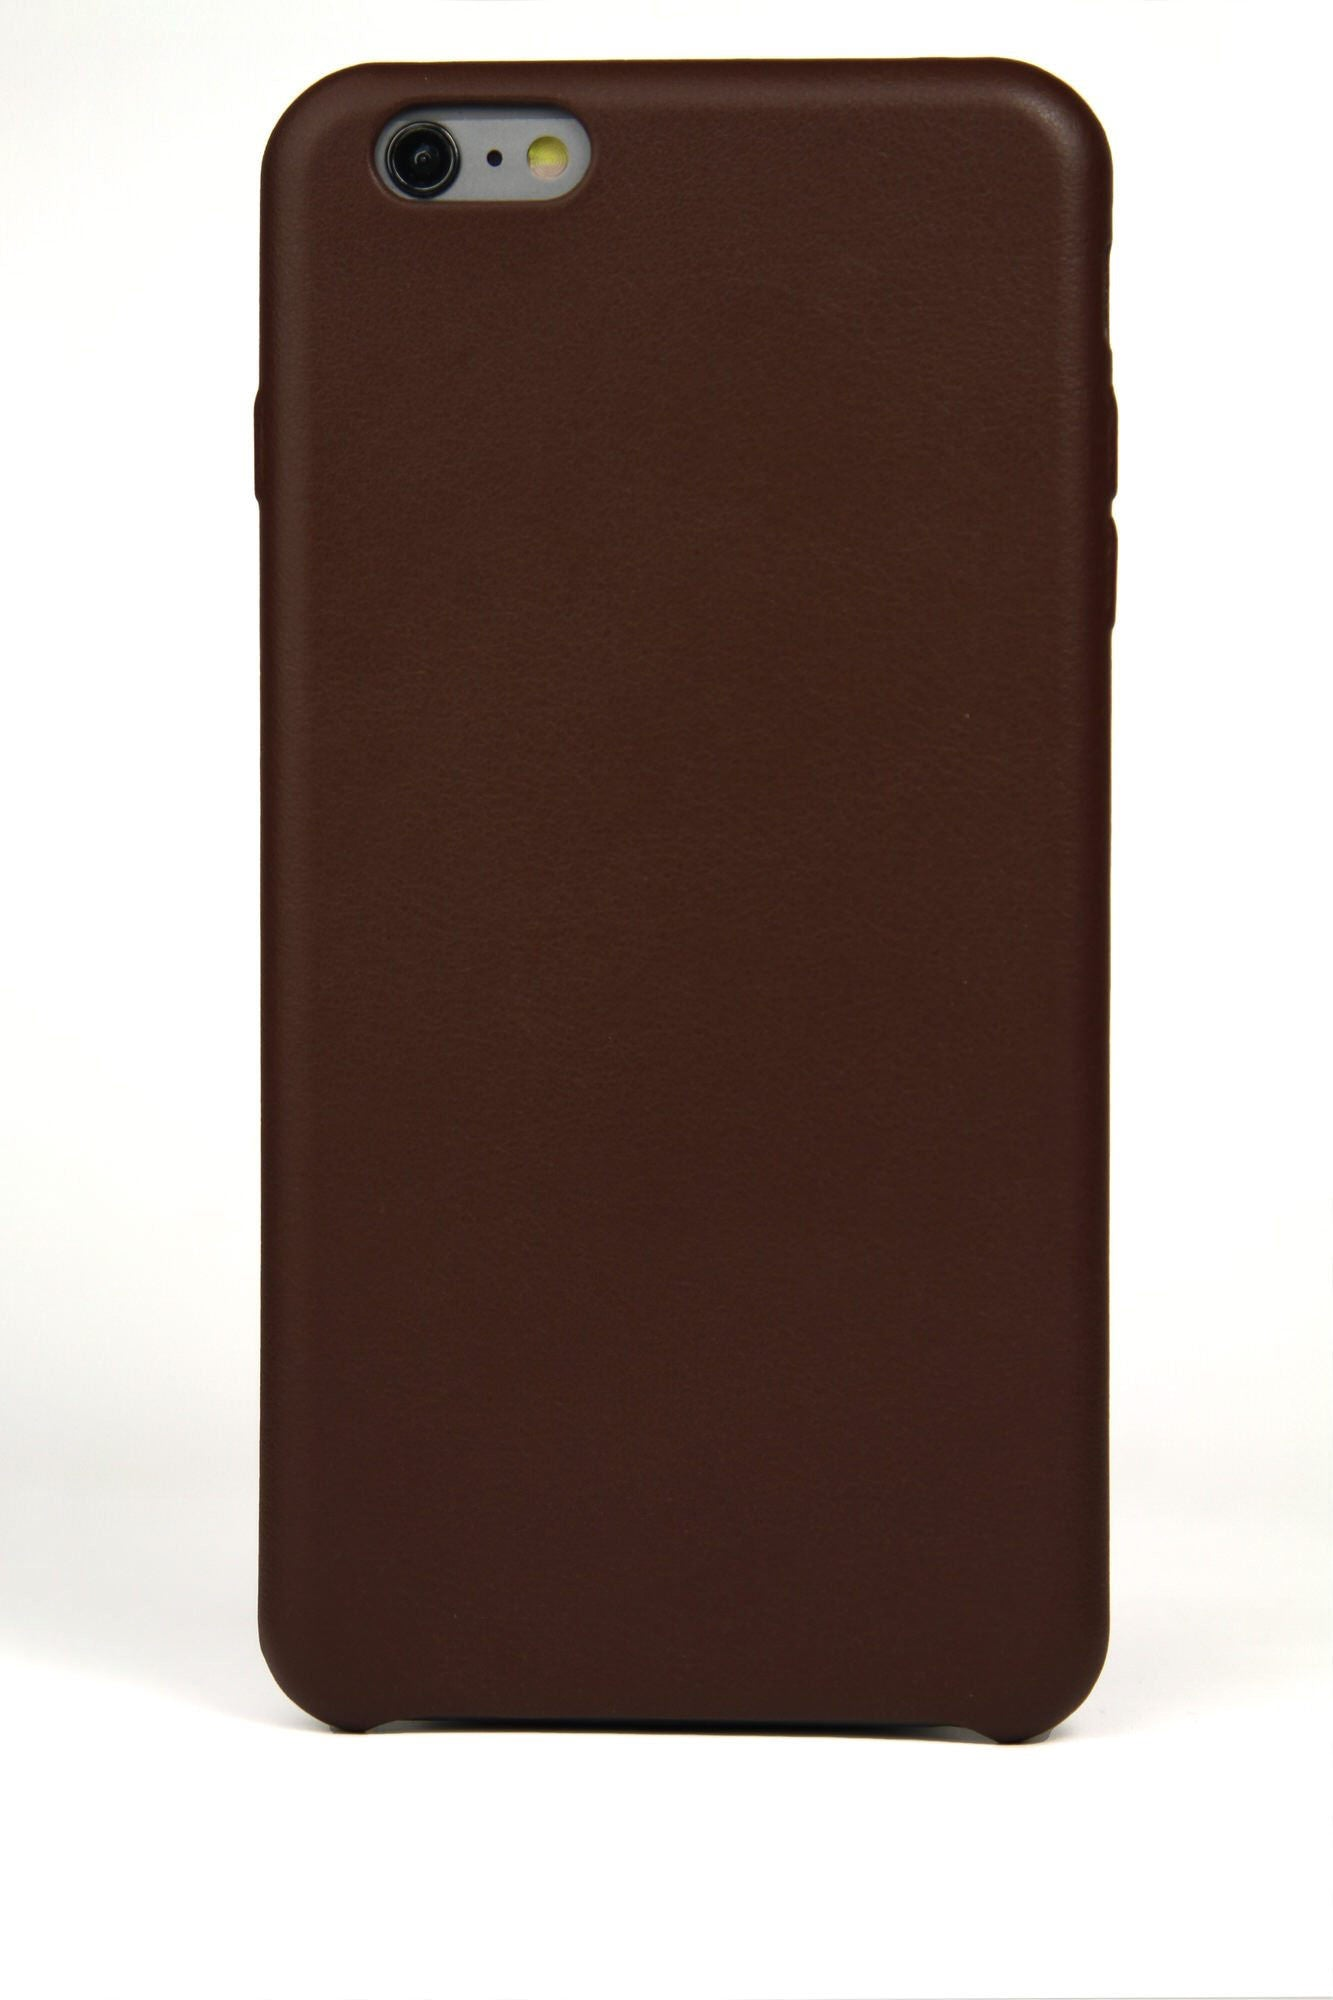 iPhone 6 Plus Case, Brown Leather